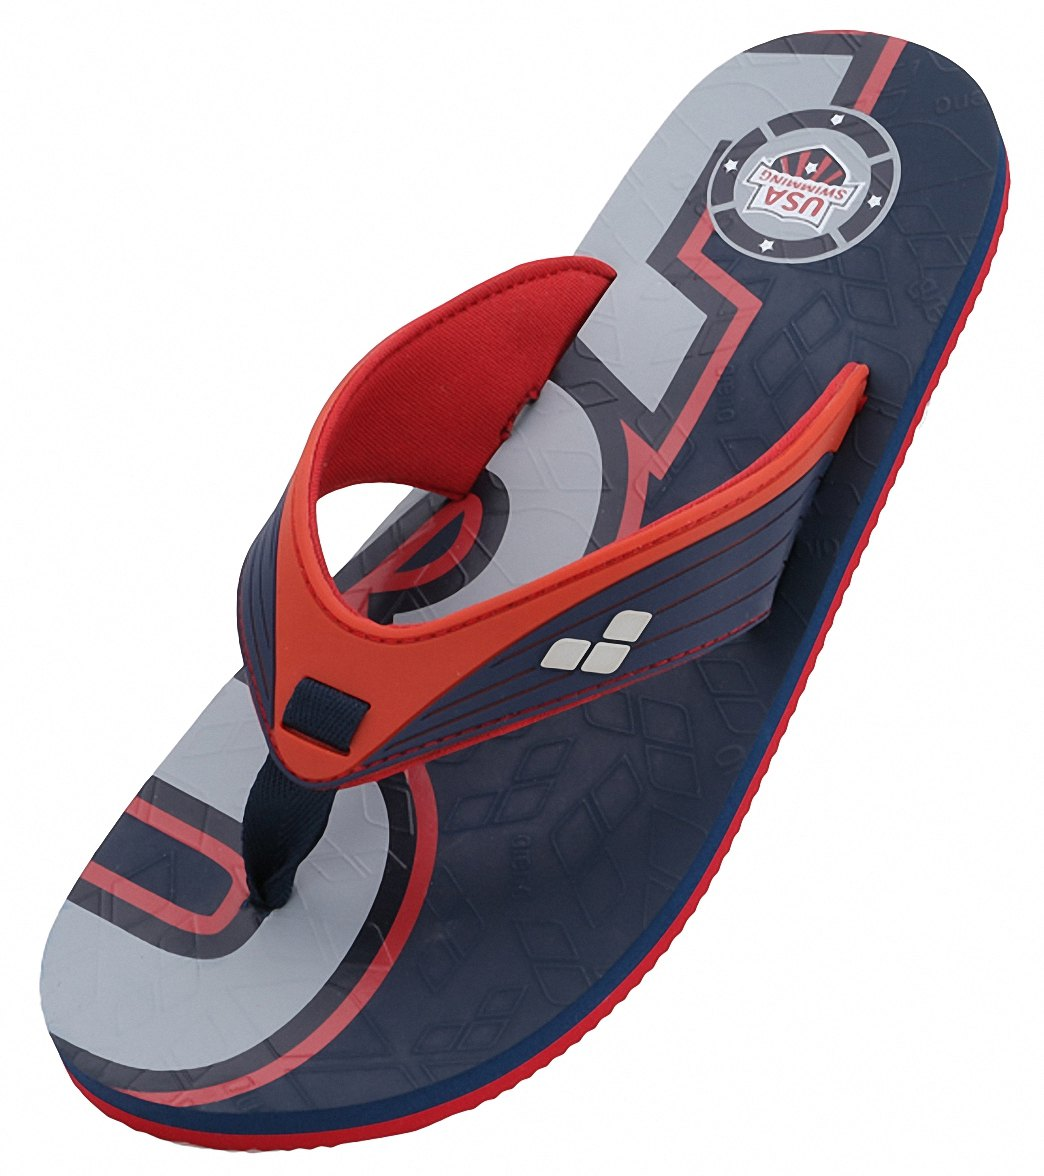 65c79f5df Arena USA Swimming Flip Flop at SwimOutlet.com